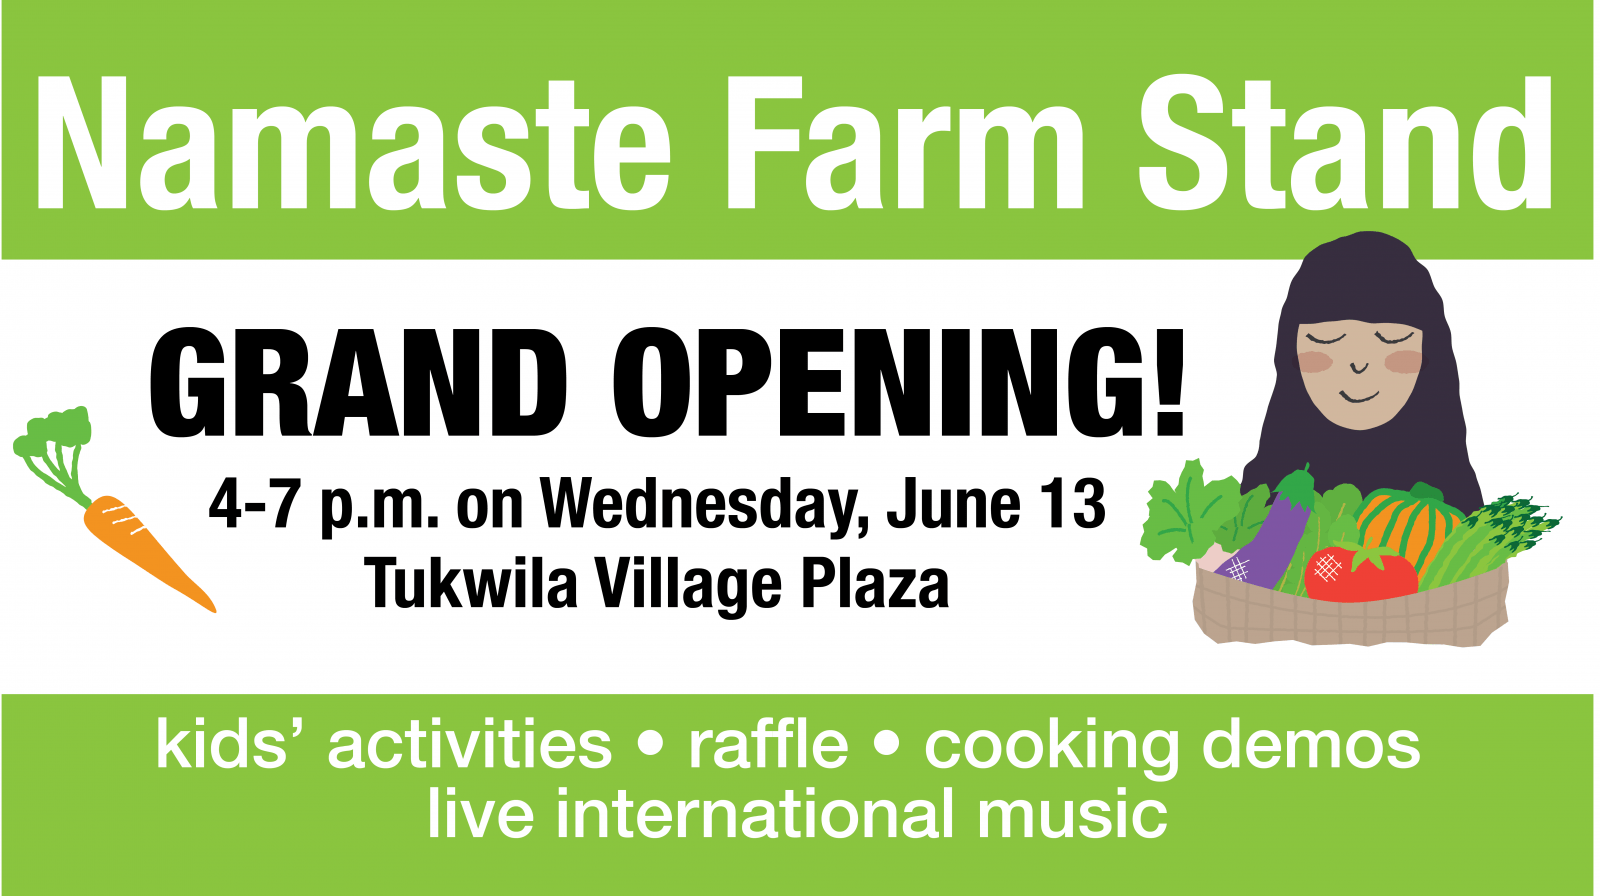 Namaste Farm Stand Grand Opening is June 13